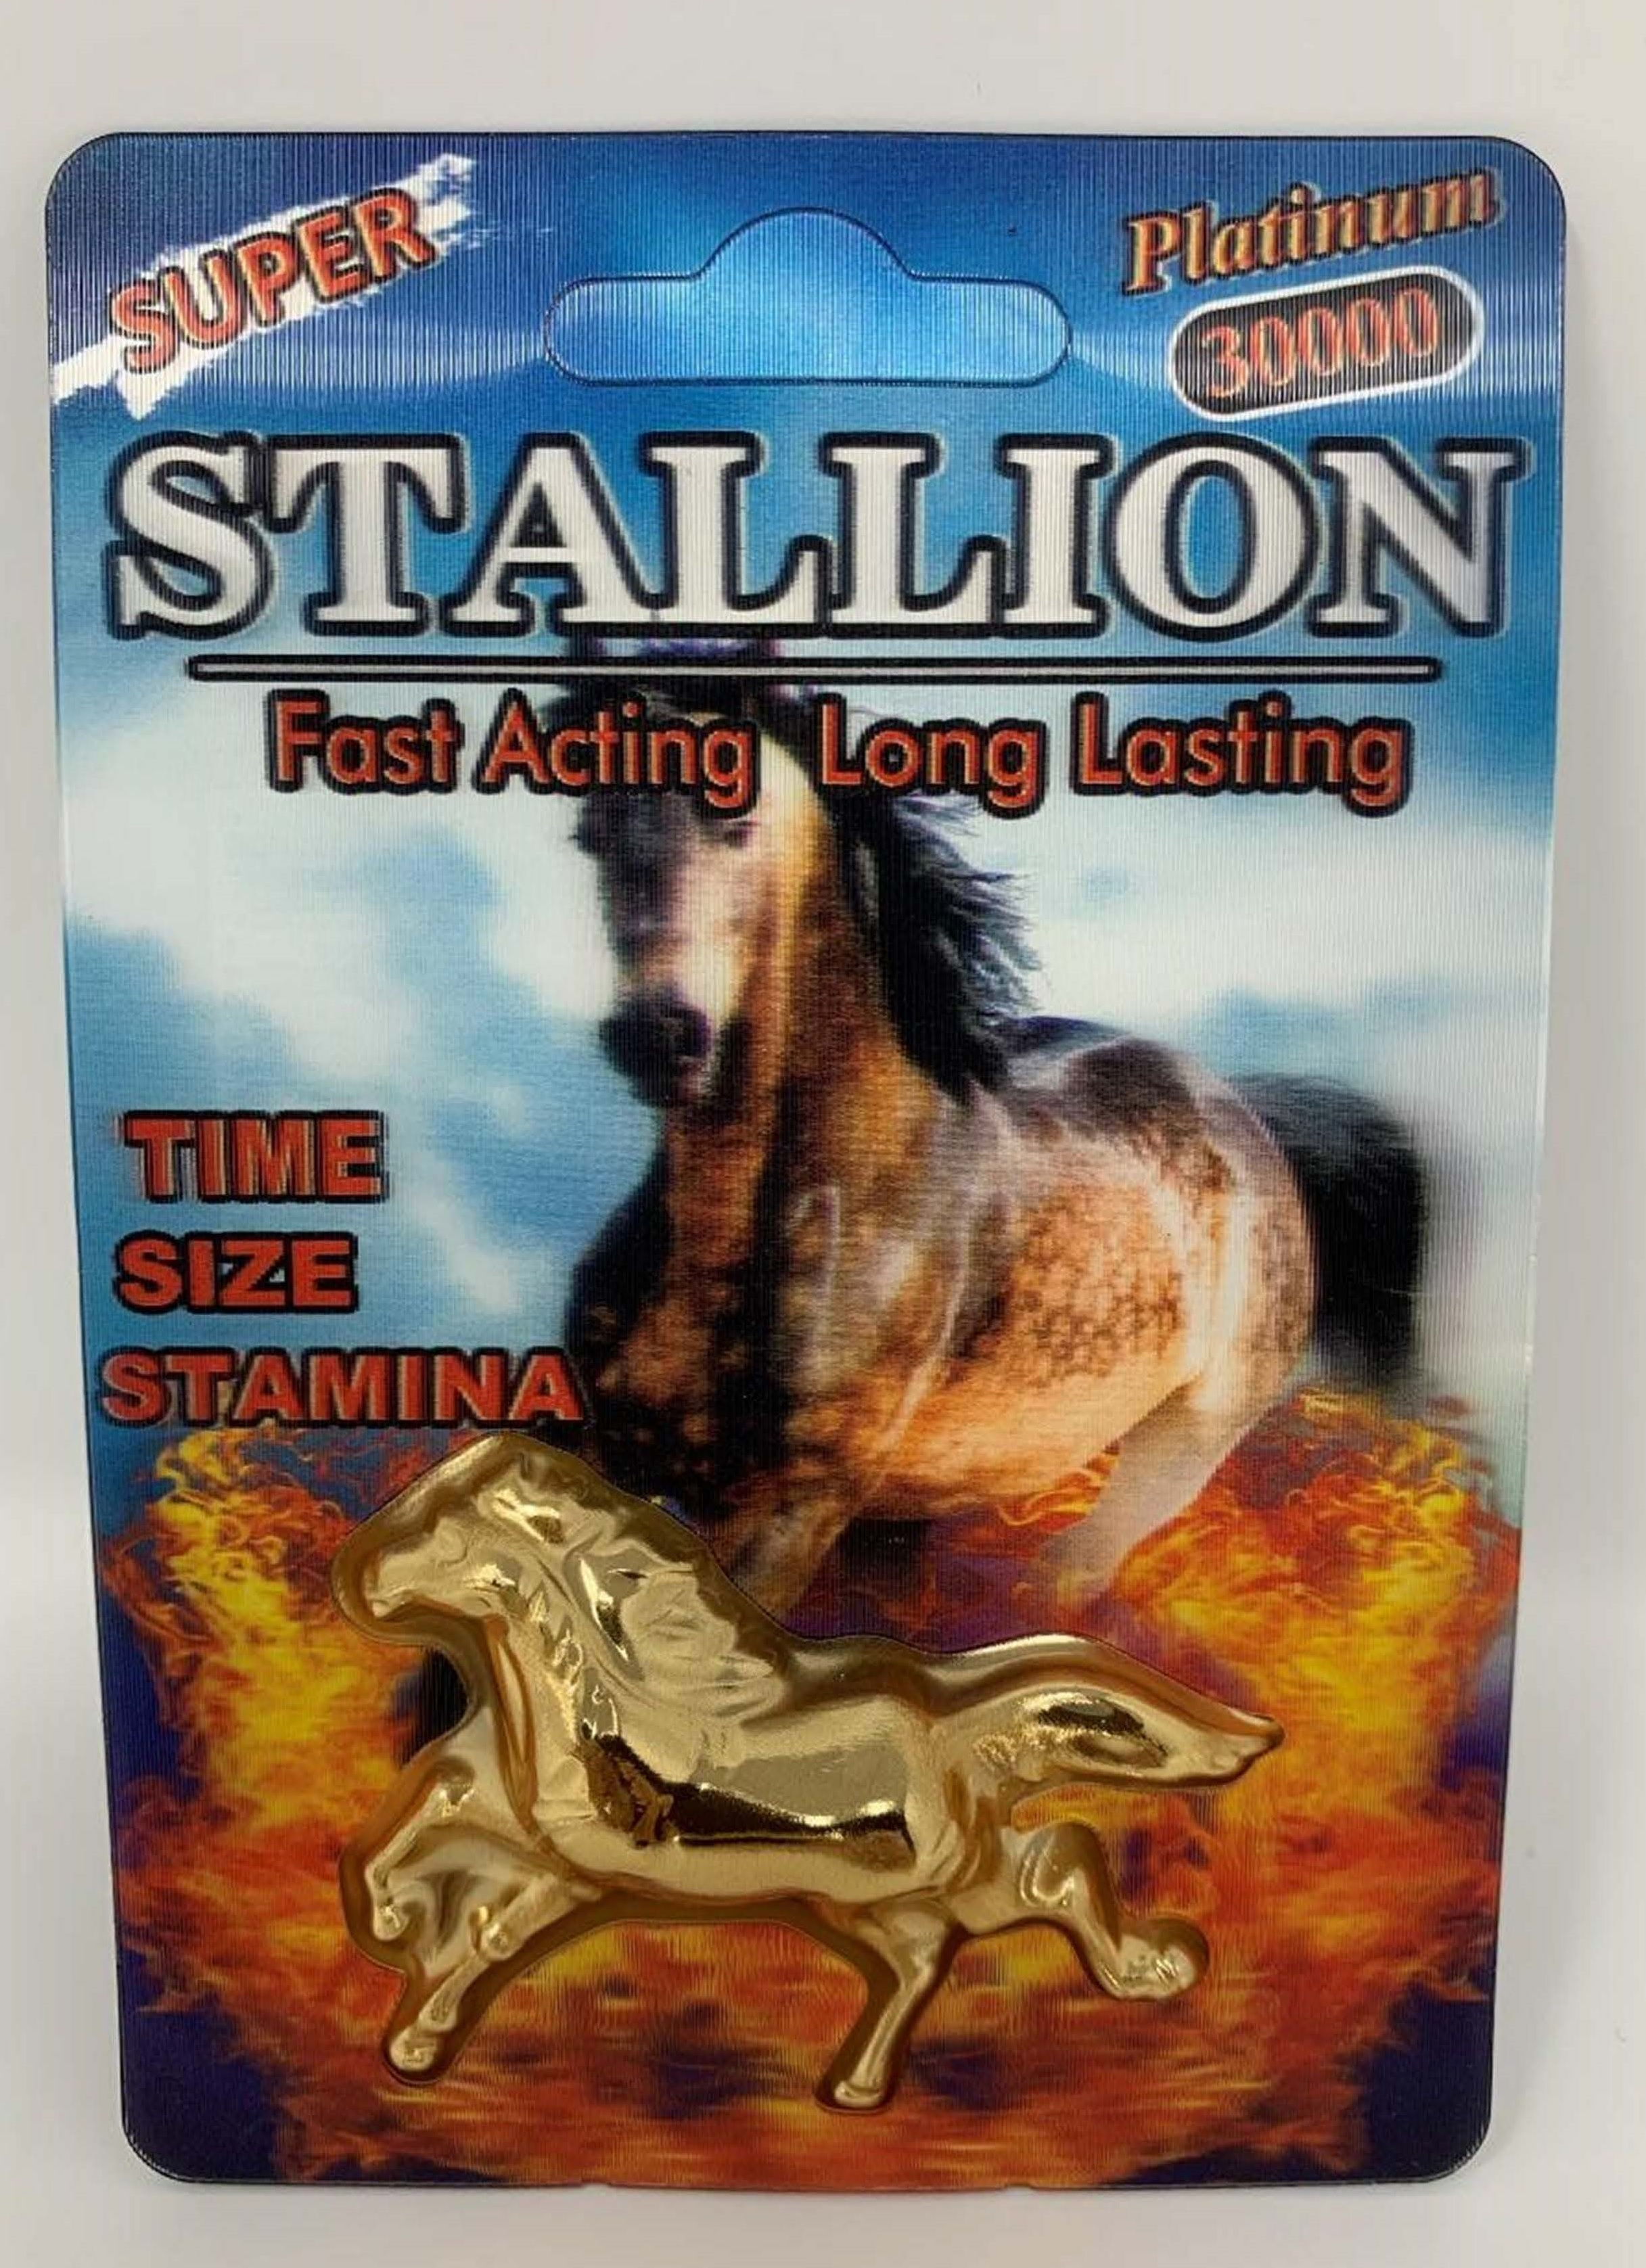 Image of the illigal product: Stallion Platinum 30000